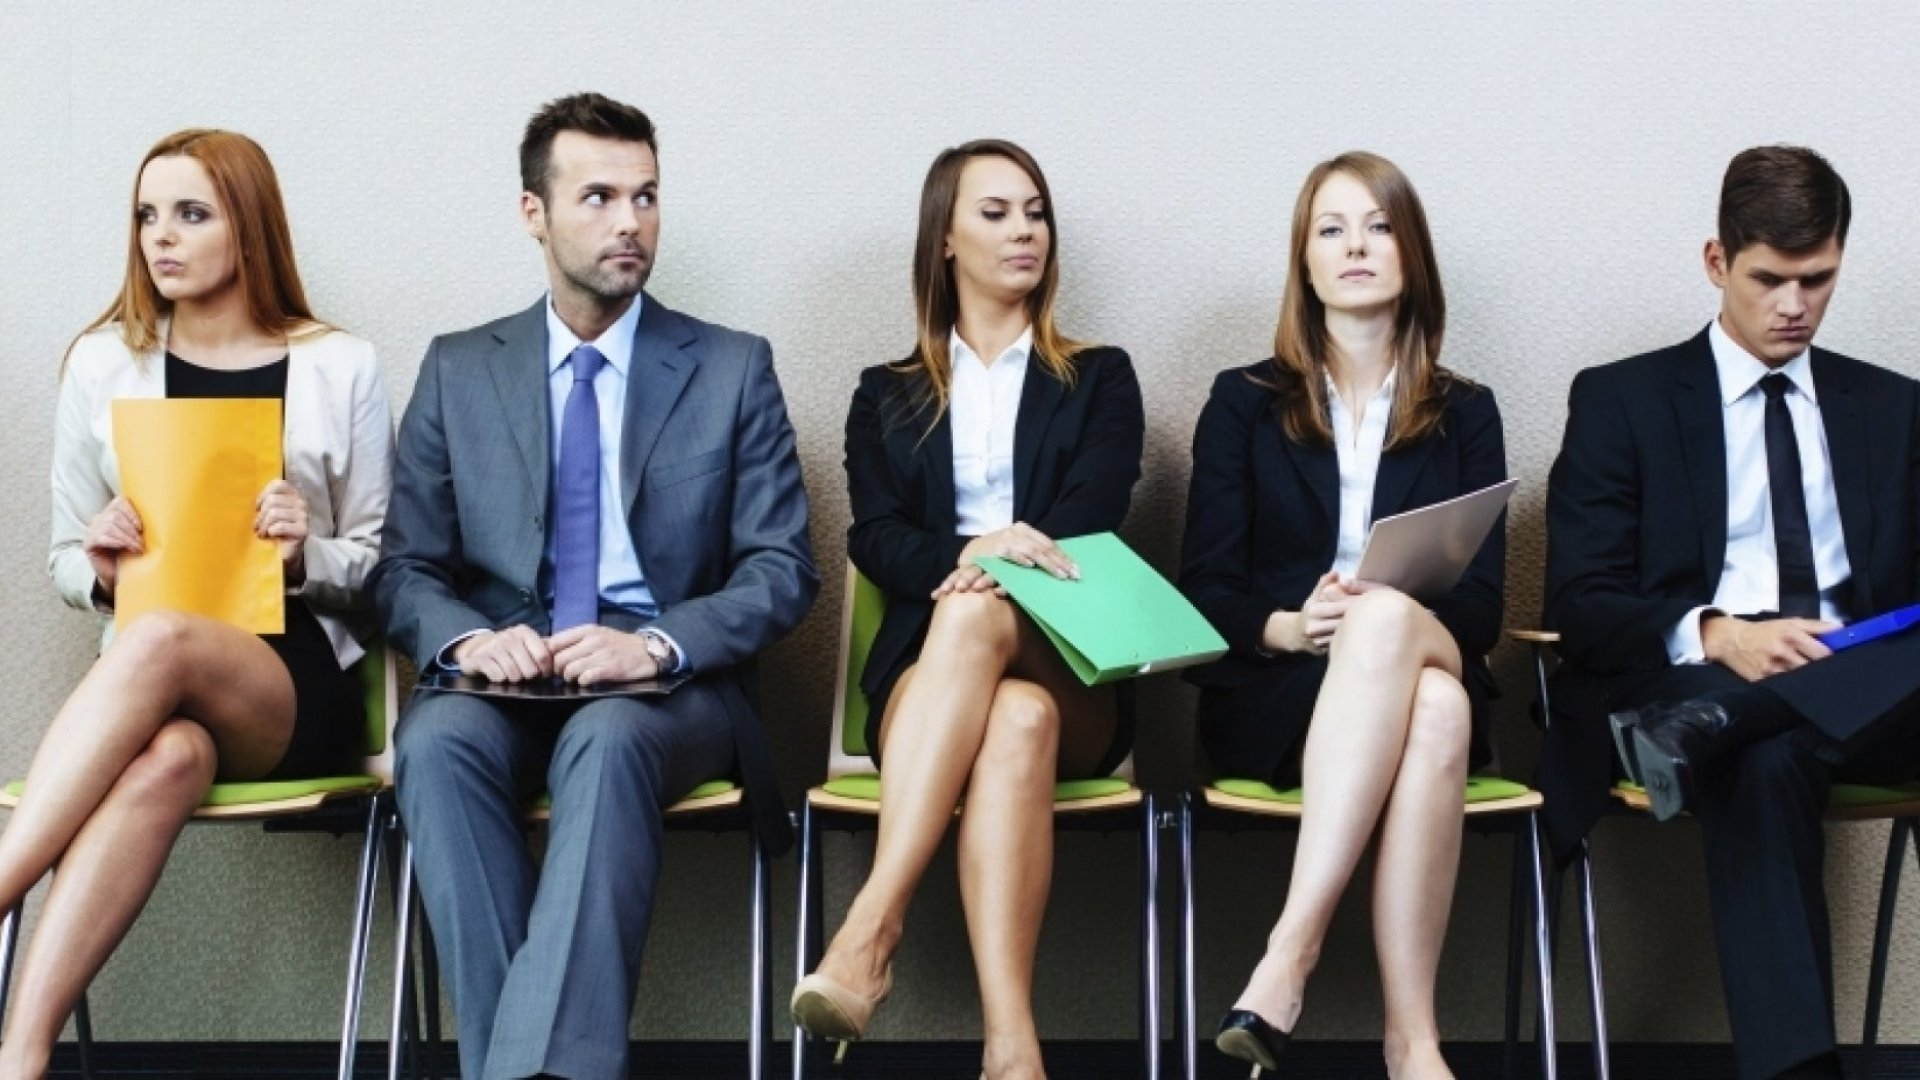 10 Reasons You Didn't Get the Job